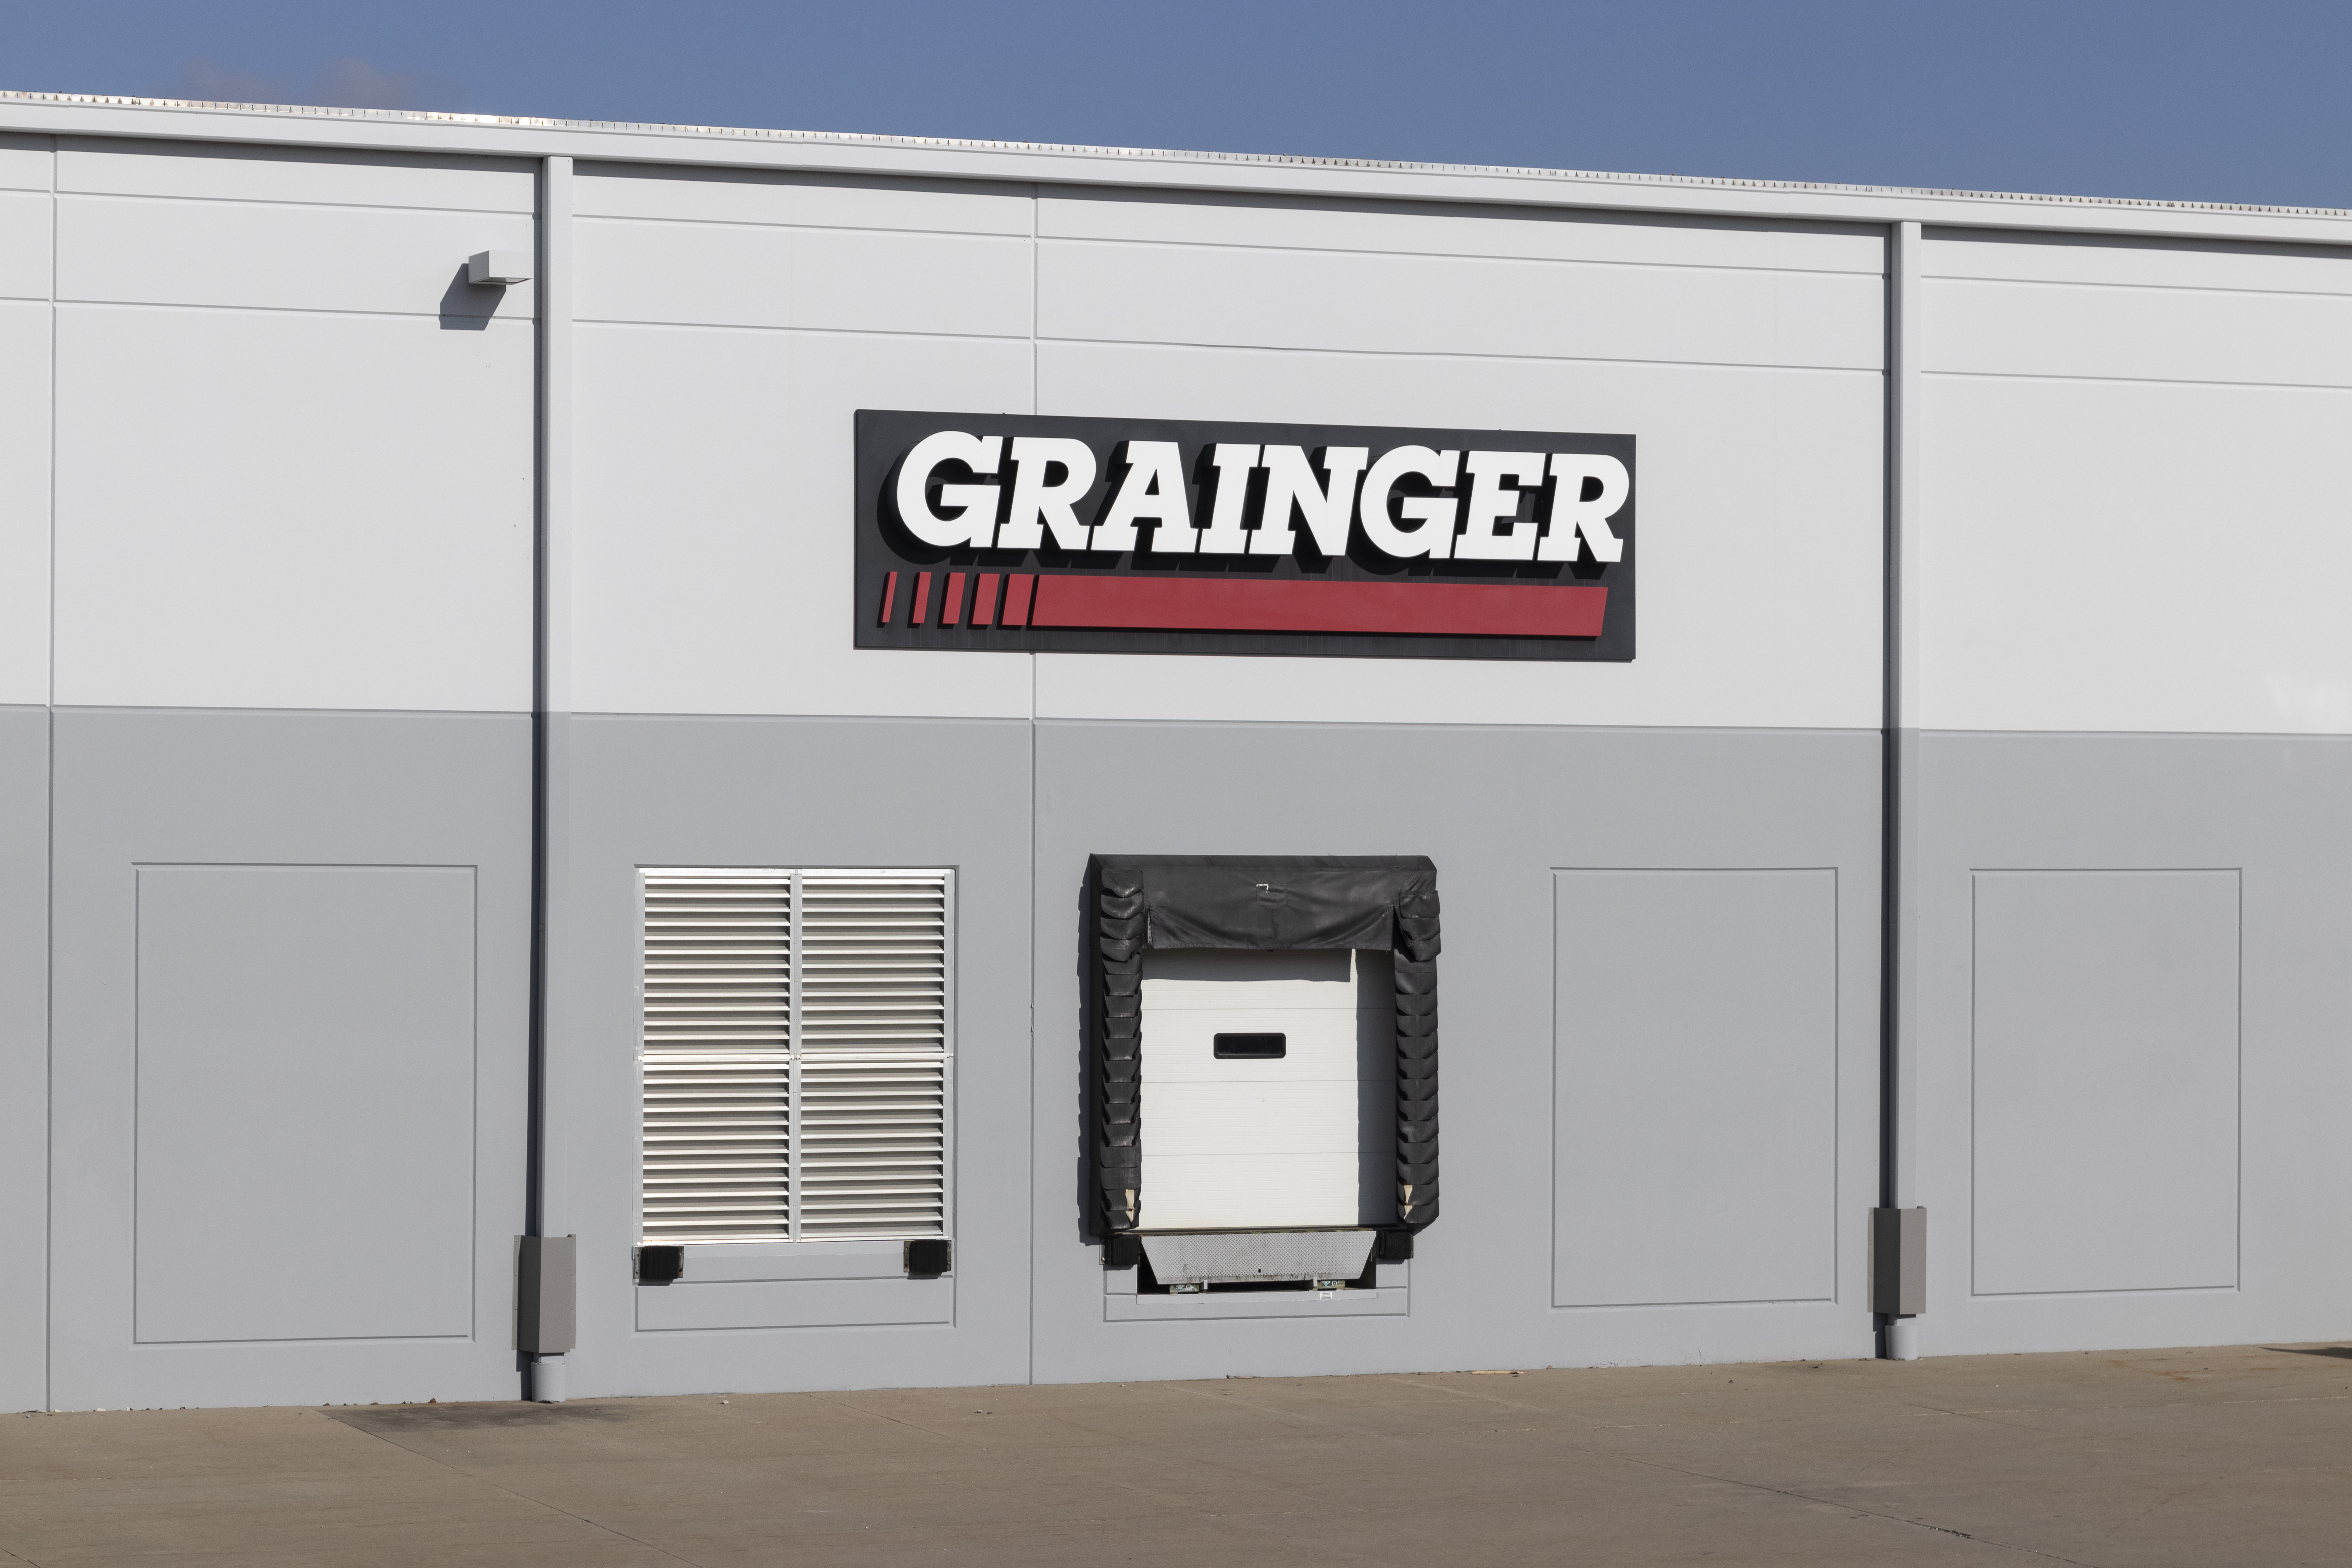 Fairfield - Circa November 2020: Grainger industrial supply warehouse. WW Grainger is a hardware and safety supply manufacturer.